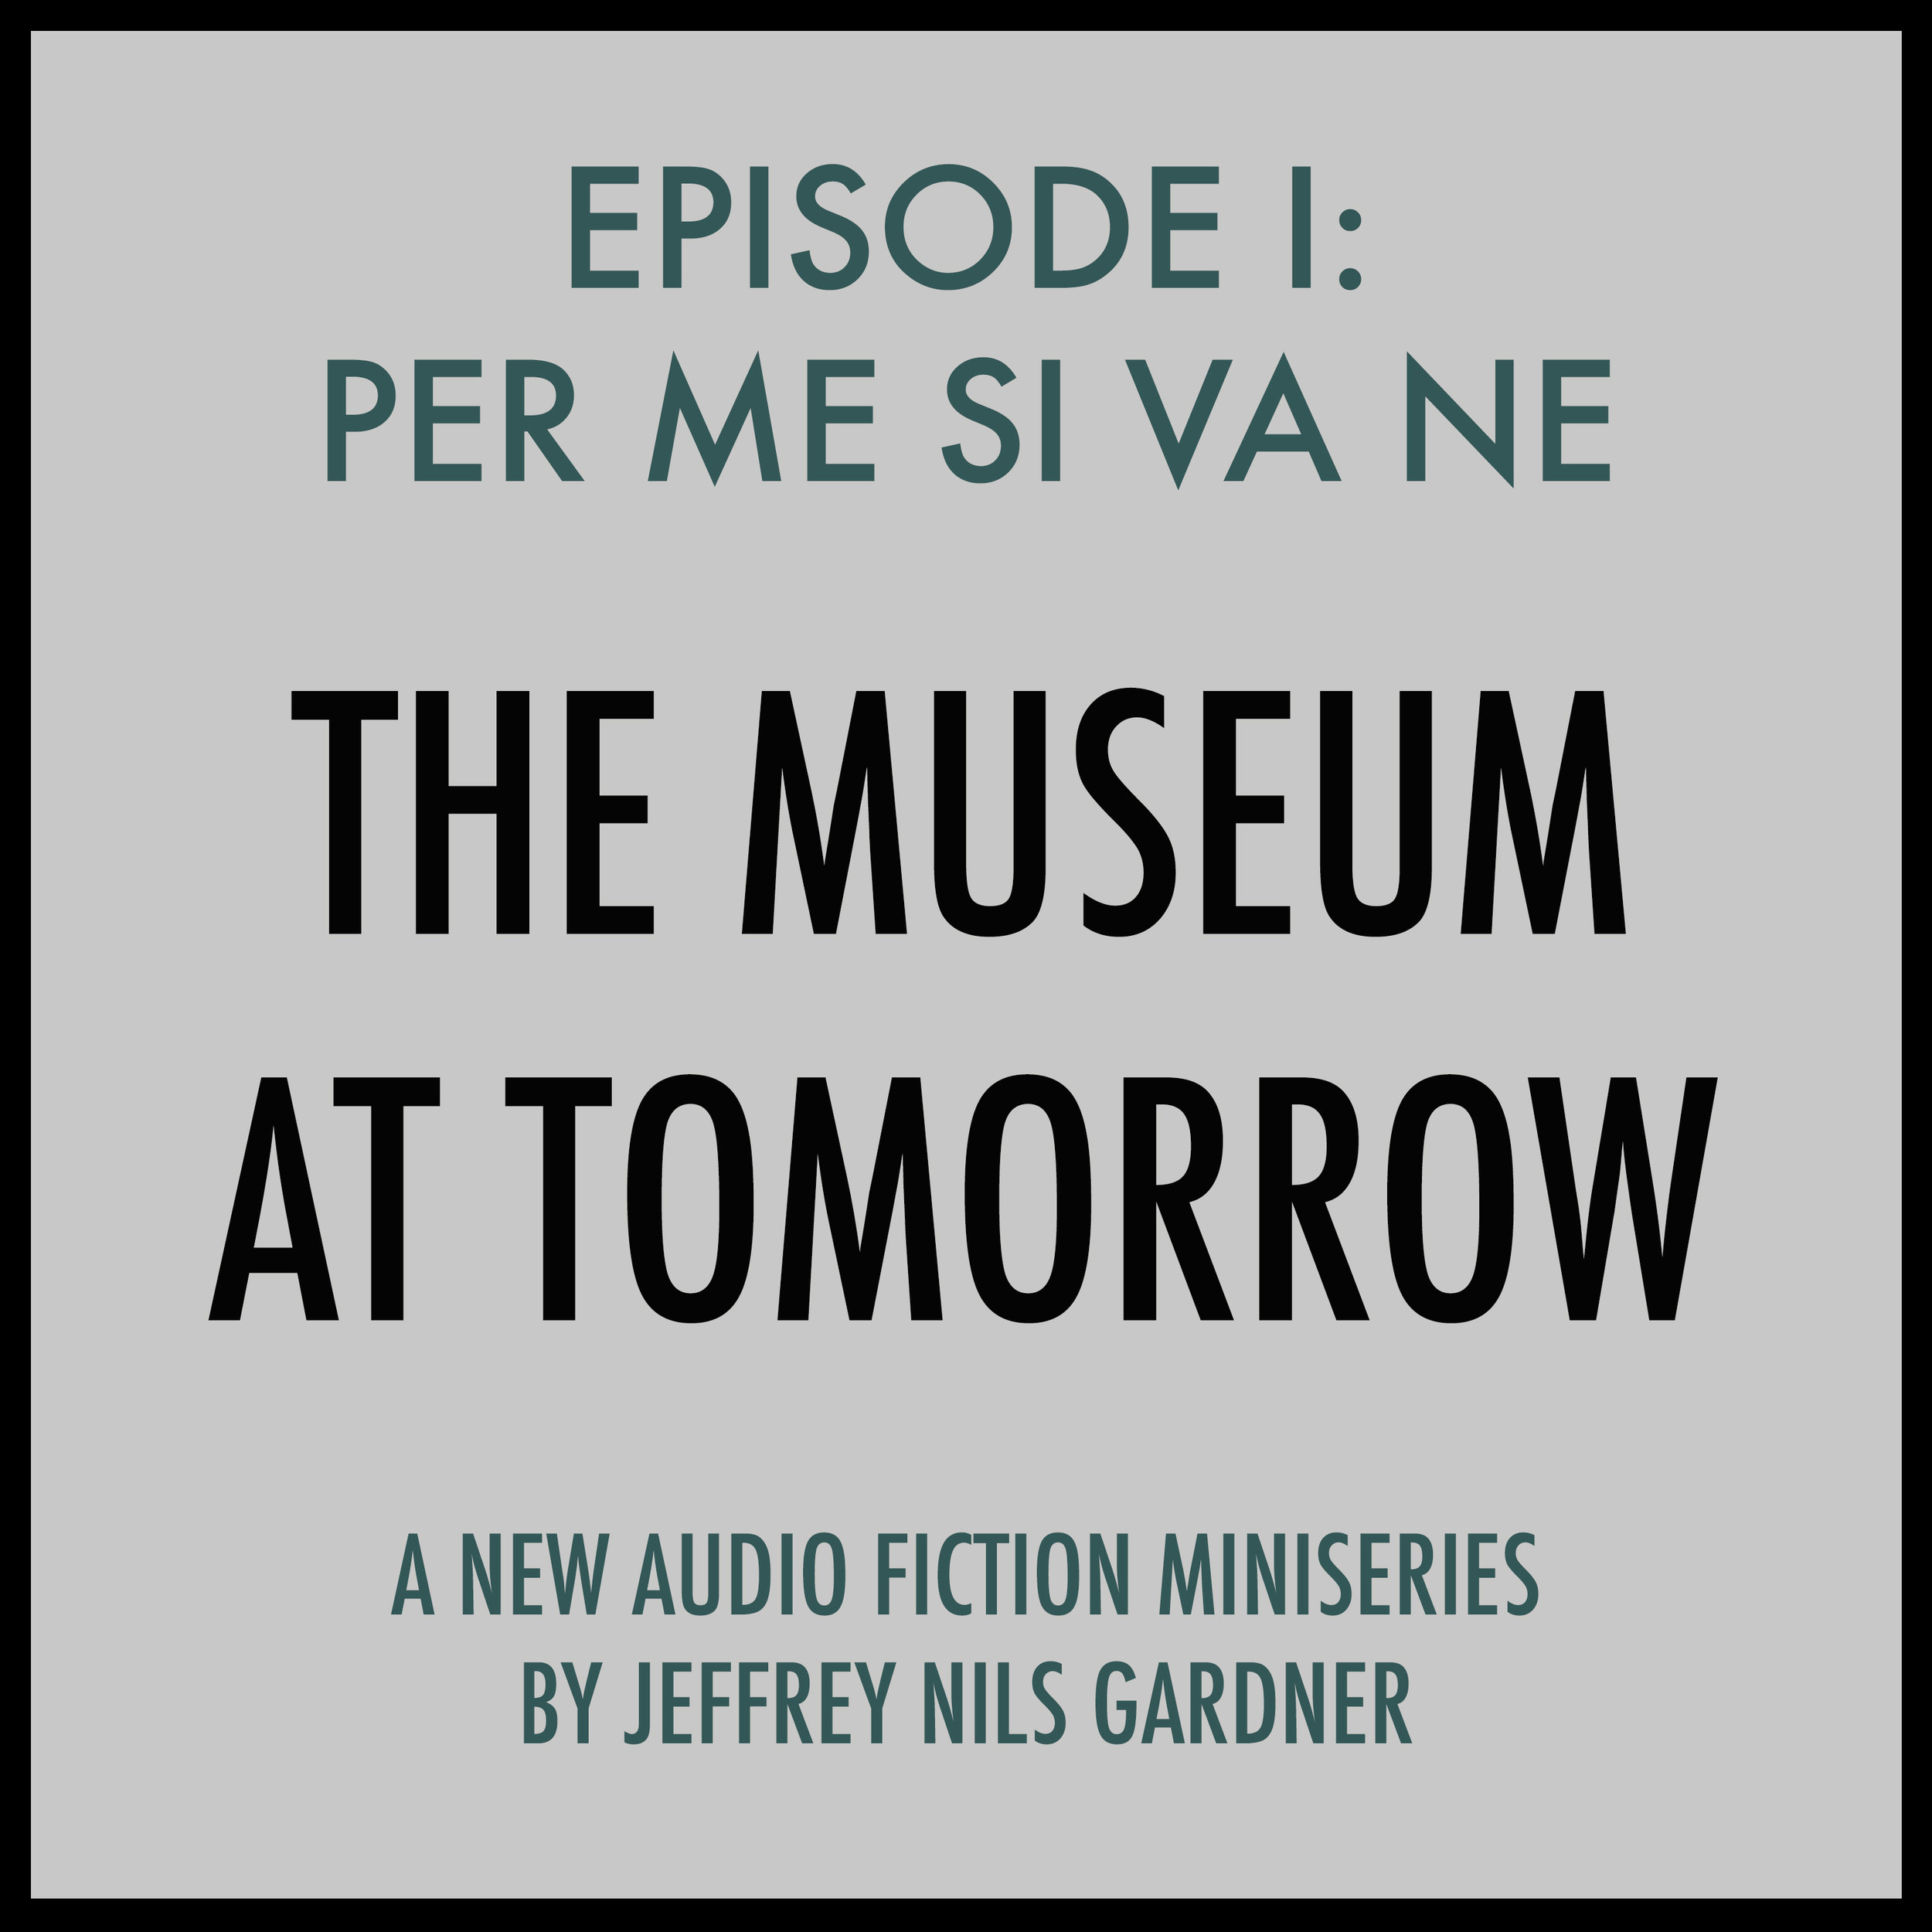 Creator of The Museum at Tomorrow, an audio fiction miniseries.